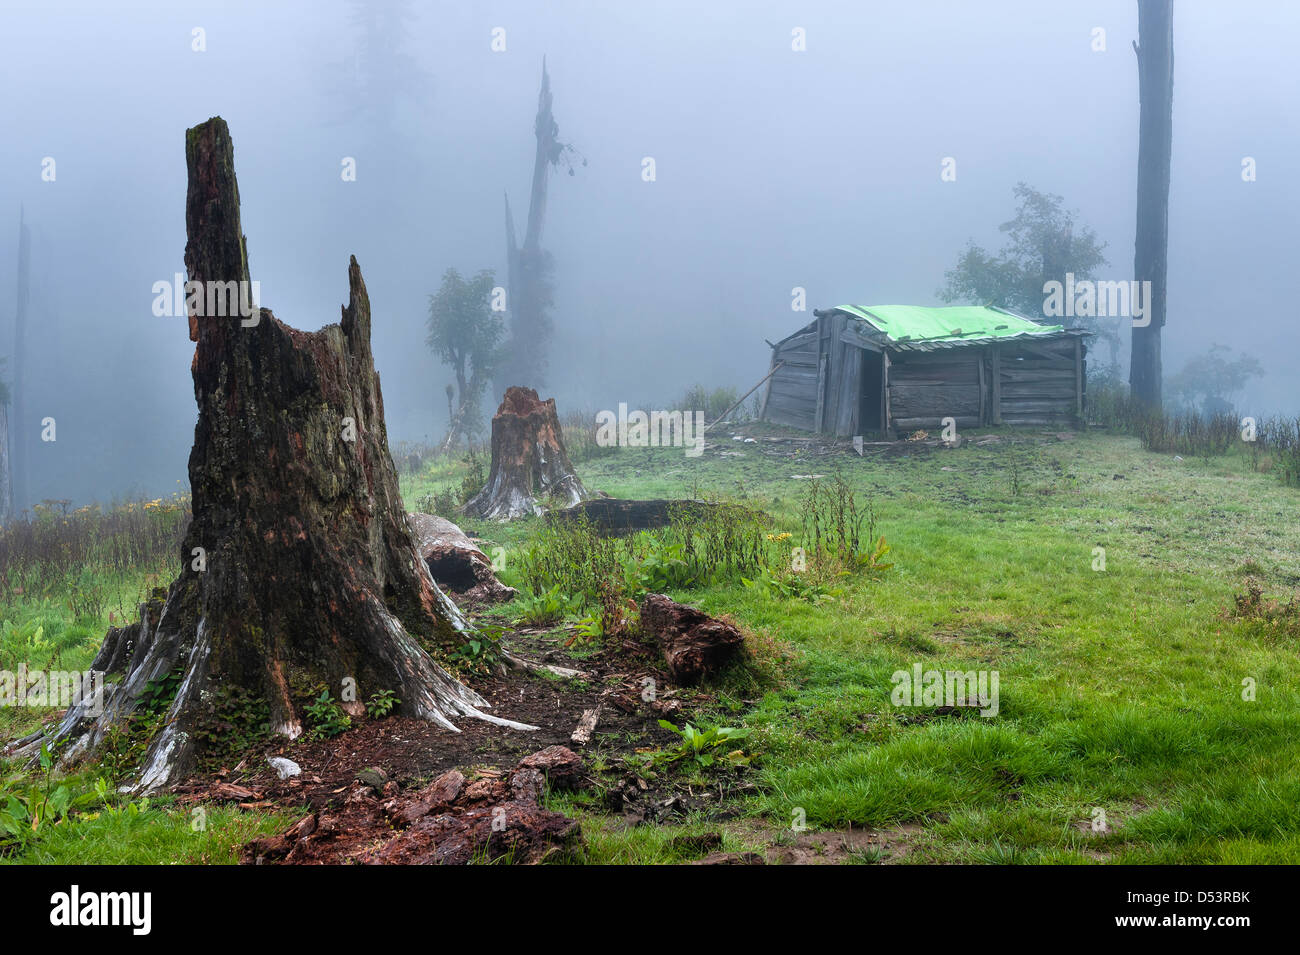 A Brokpa, nomadic people, wood cabin in the forests of western Arunachal Pradesh in Tawang district, India. - Stock Image